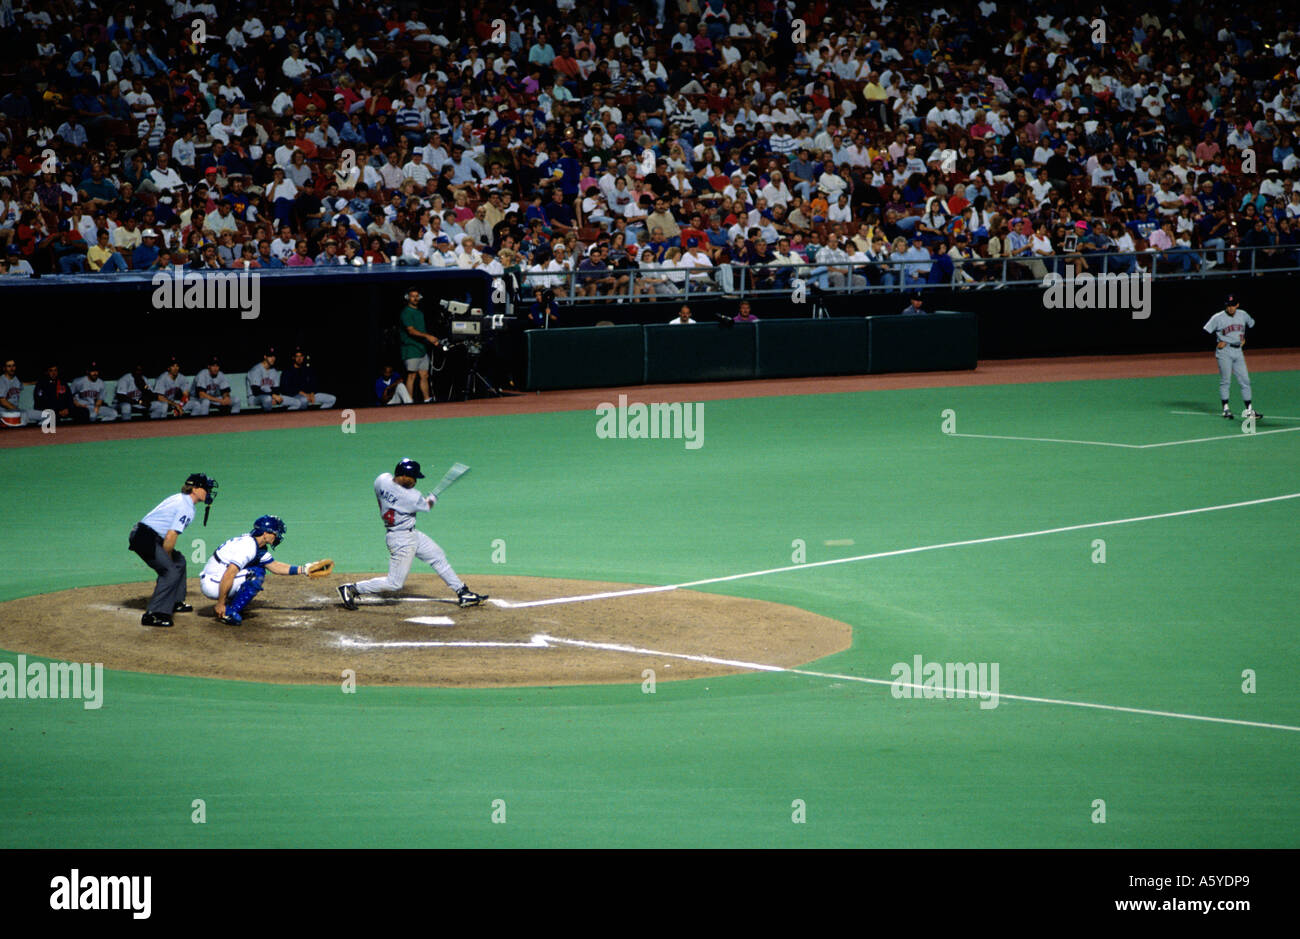 A professional baseball player up to bat at the Kansas City Royals baseball stadium. - Stock Image